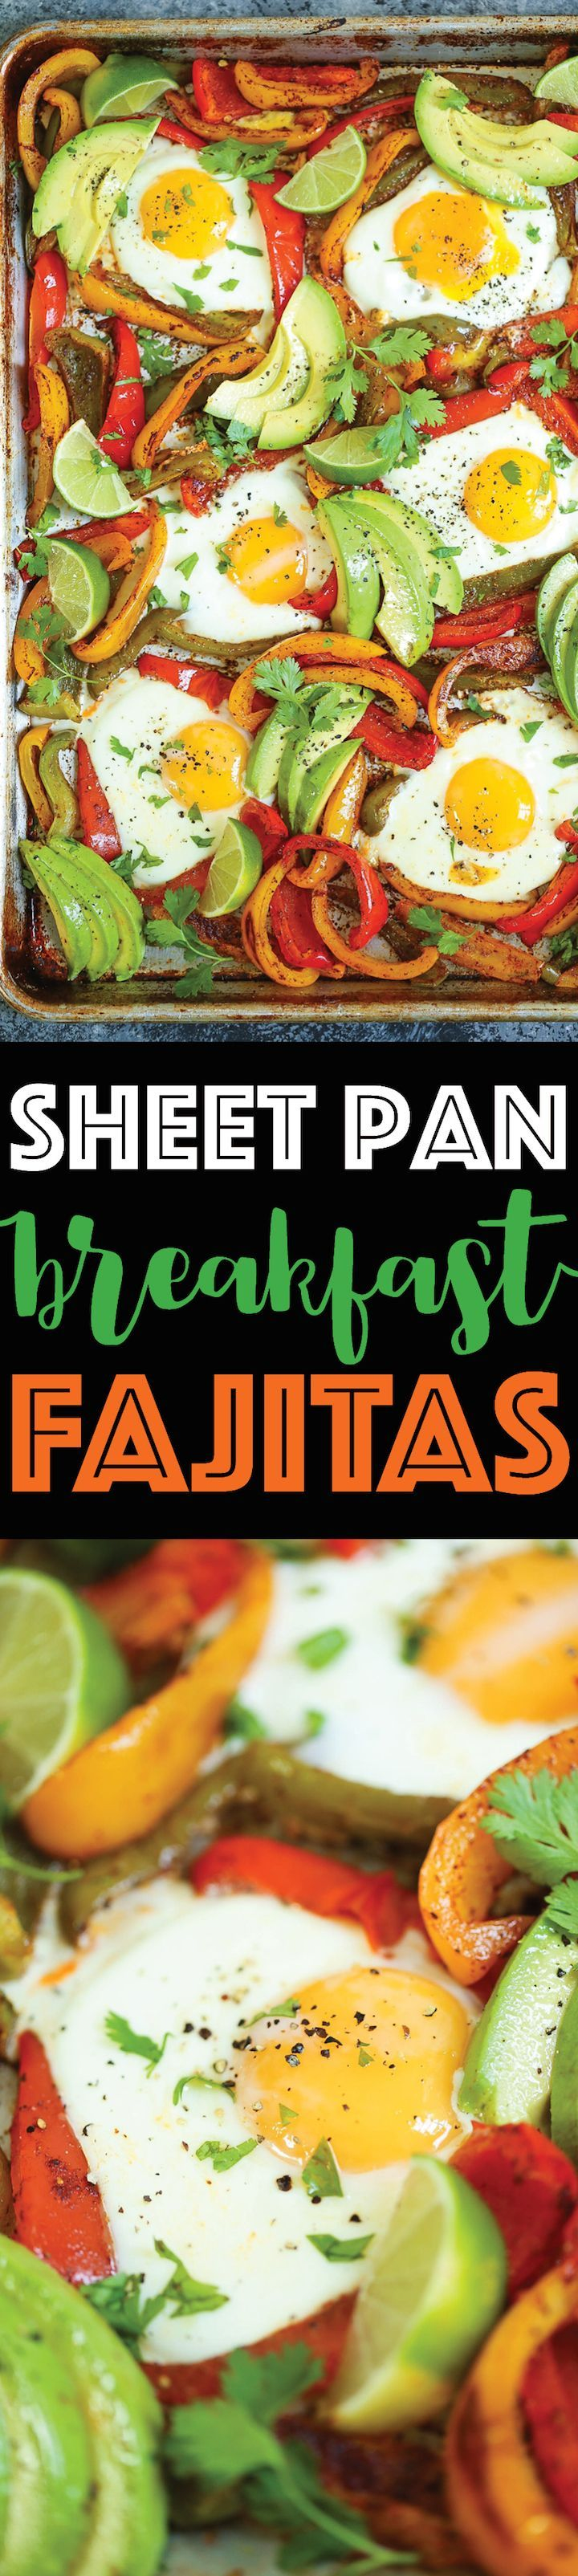 Sheet Pan Breakfast Fajitas - Everyone's favorite fajitas for breakfast! Loaded with bell peppers and eggs that cook right on the sheet pan! EASY CLEAN UP!